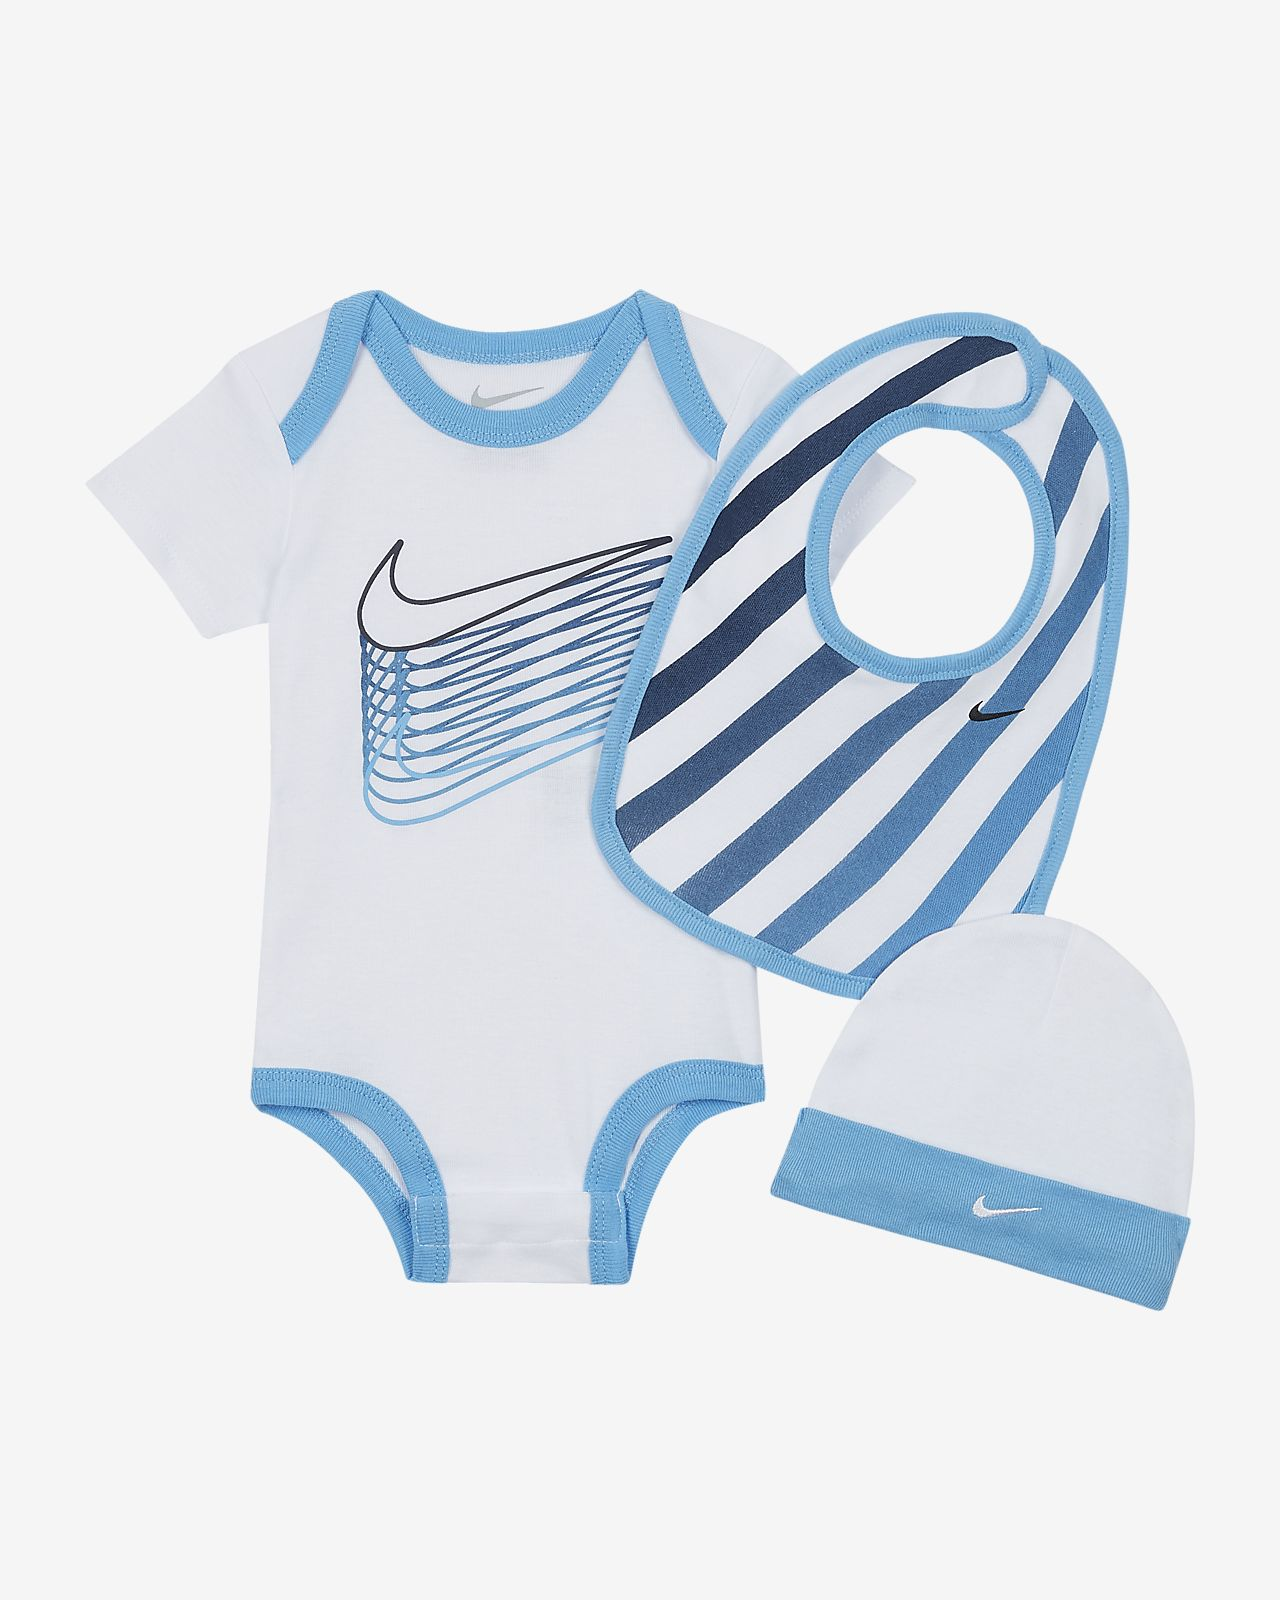 Nike Baby Bodysuit, Bib and Beanie Set